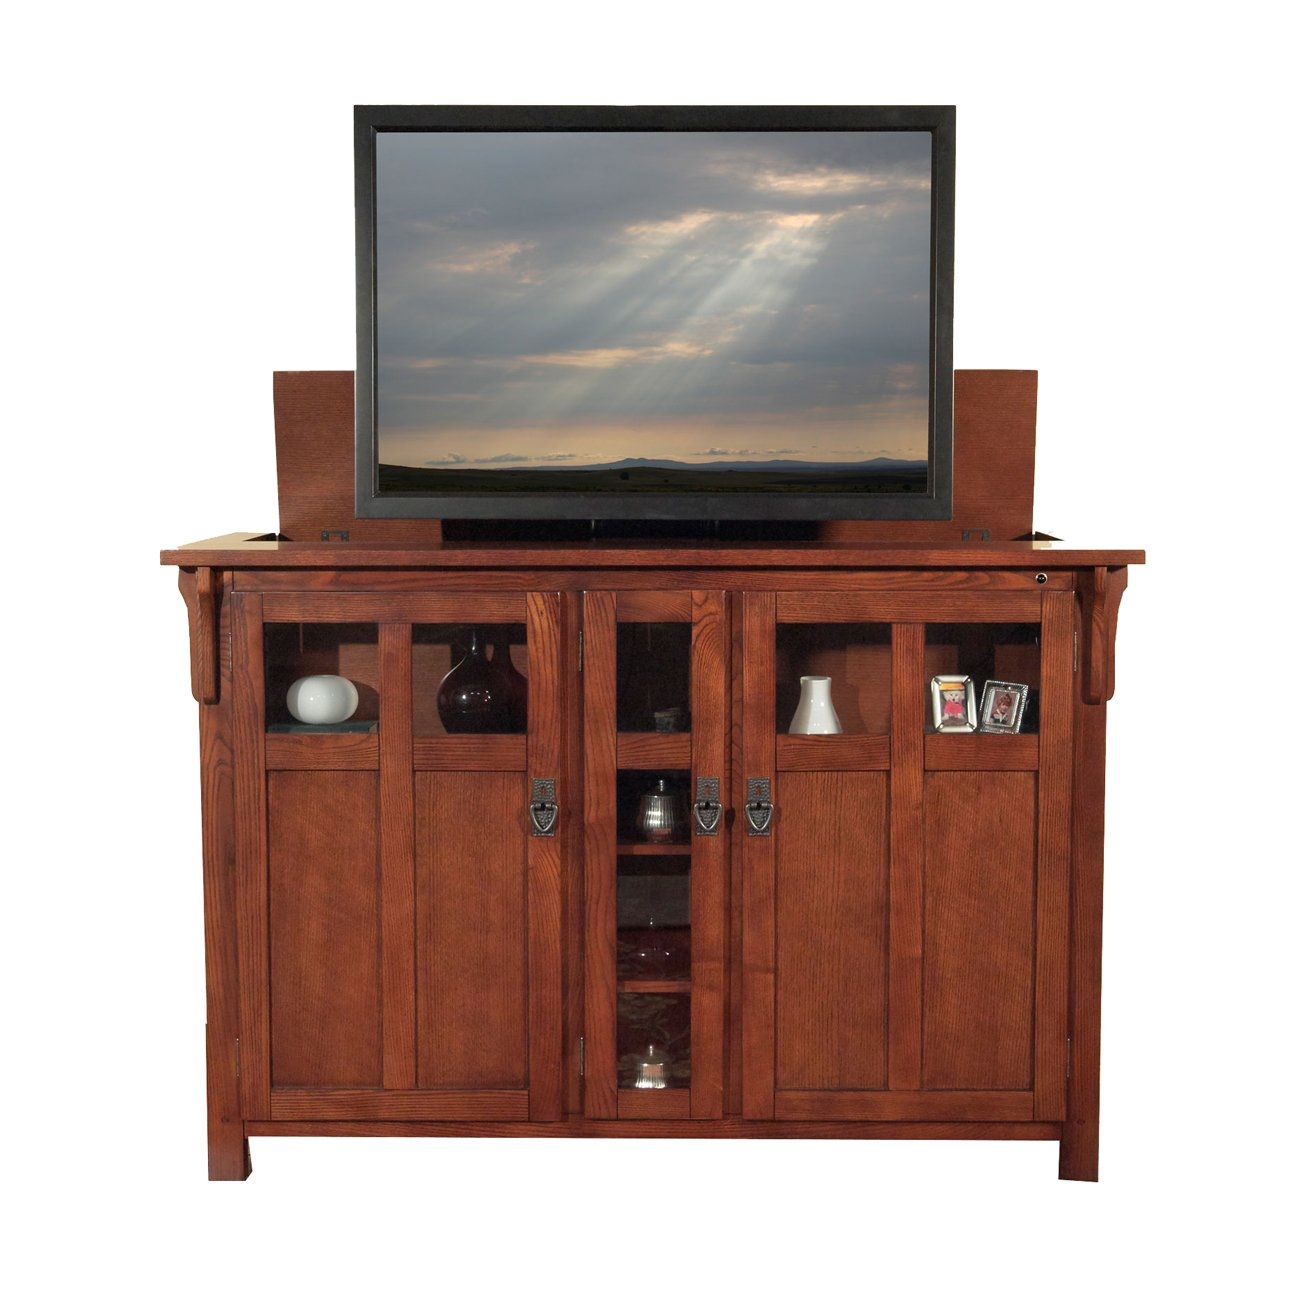 Touchstone 70062 – Bungalow TV Lift Cabinet Chestnut Oak – Up to 60 Inch TVs Diagonal 55 in Wide – Mission Style Motorized TV Cabinet – Pop Up TV Cabinet with Memory Feature, IR RF, 12V Trigger